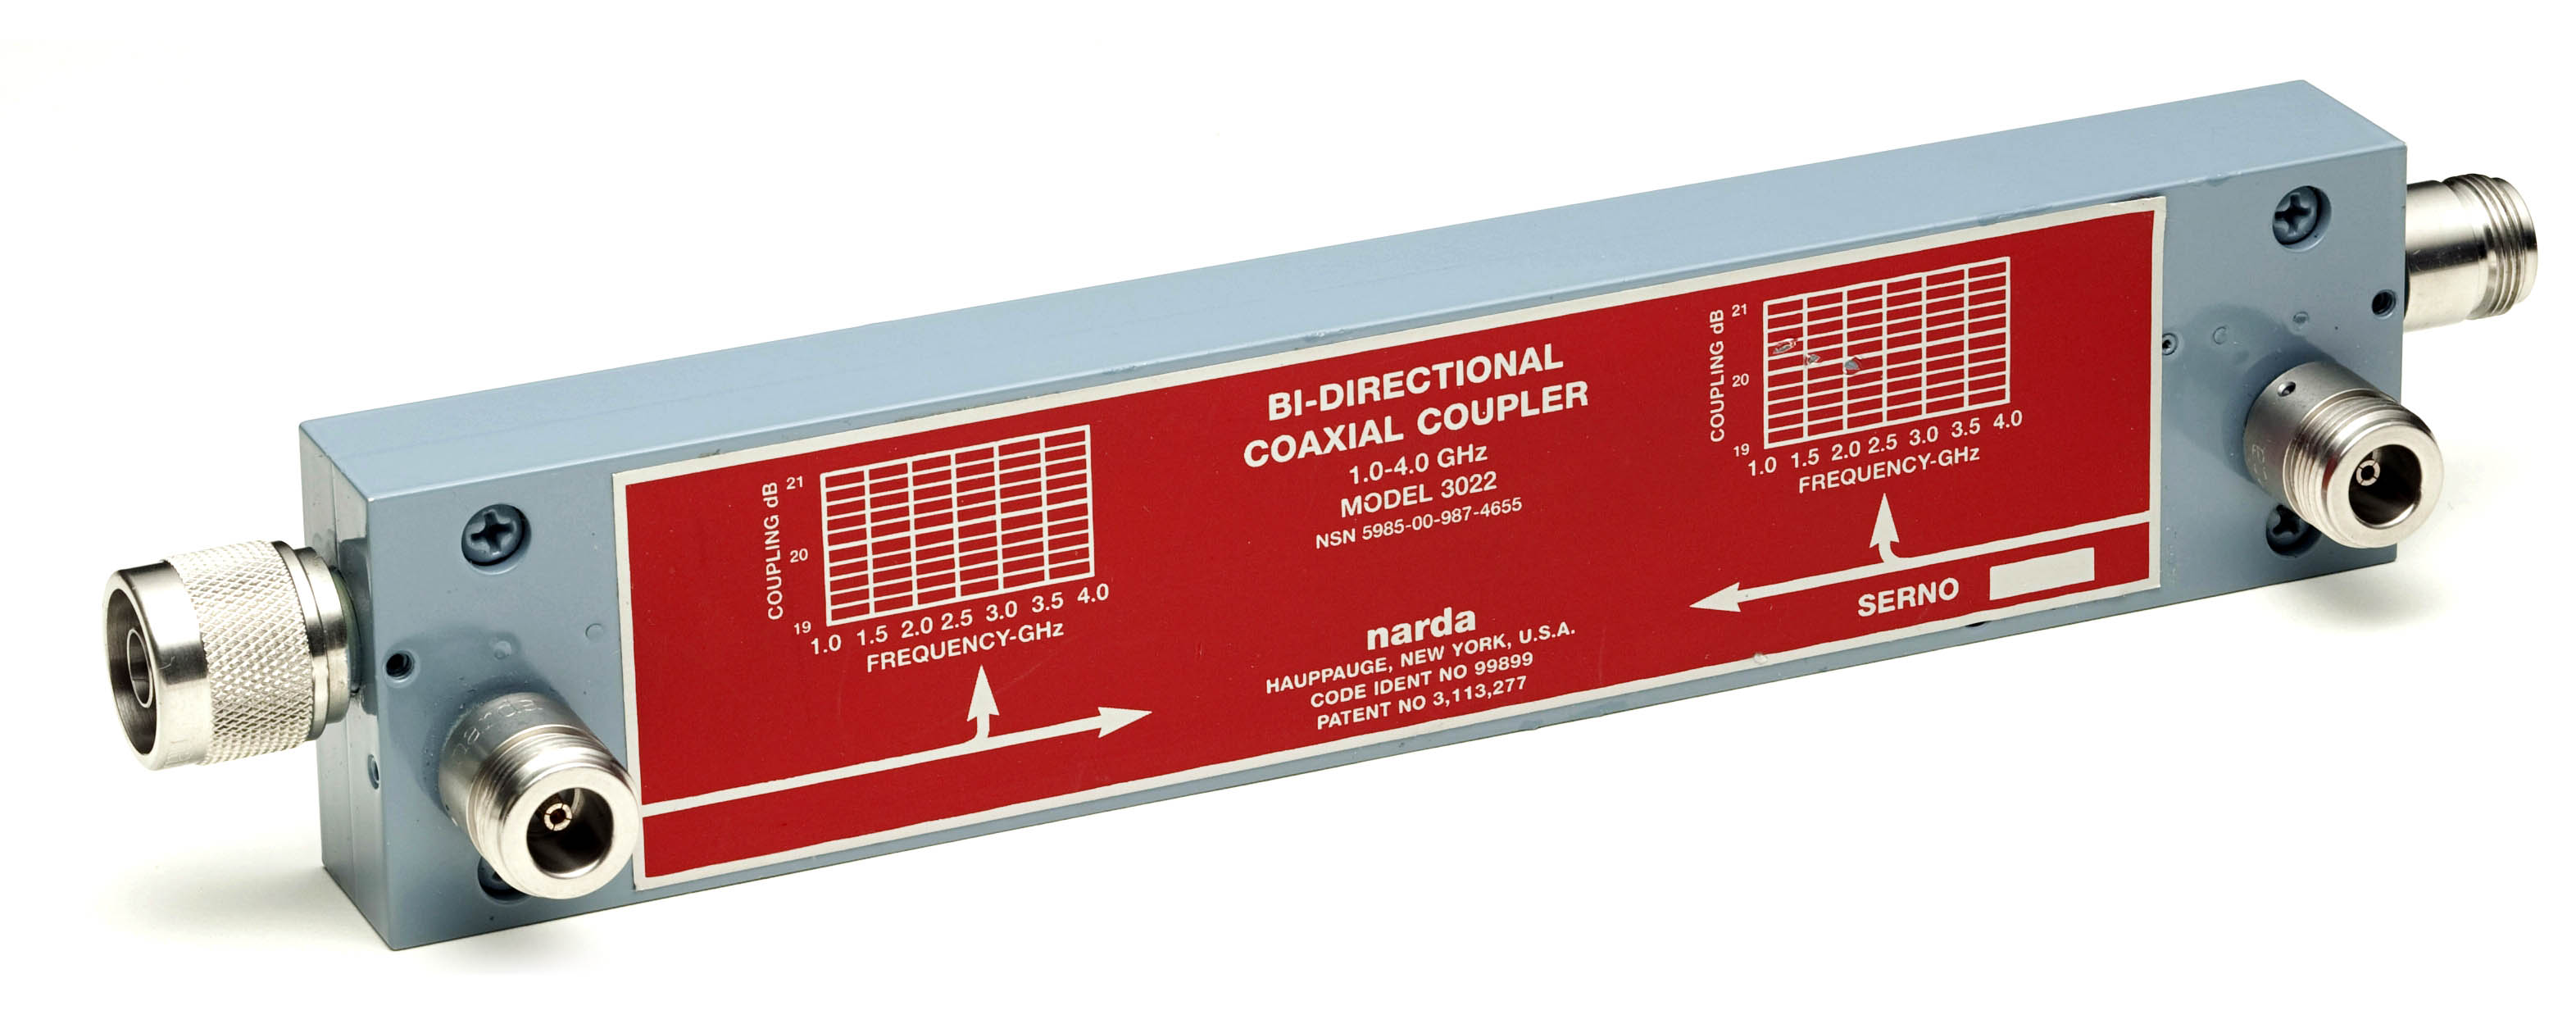 Narda 3022 Reflectometer Coupler